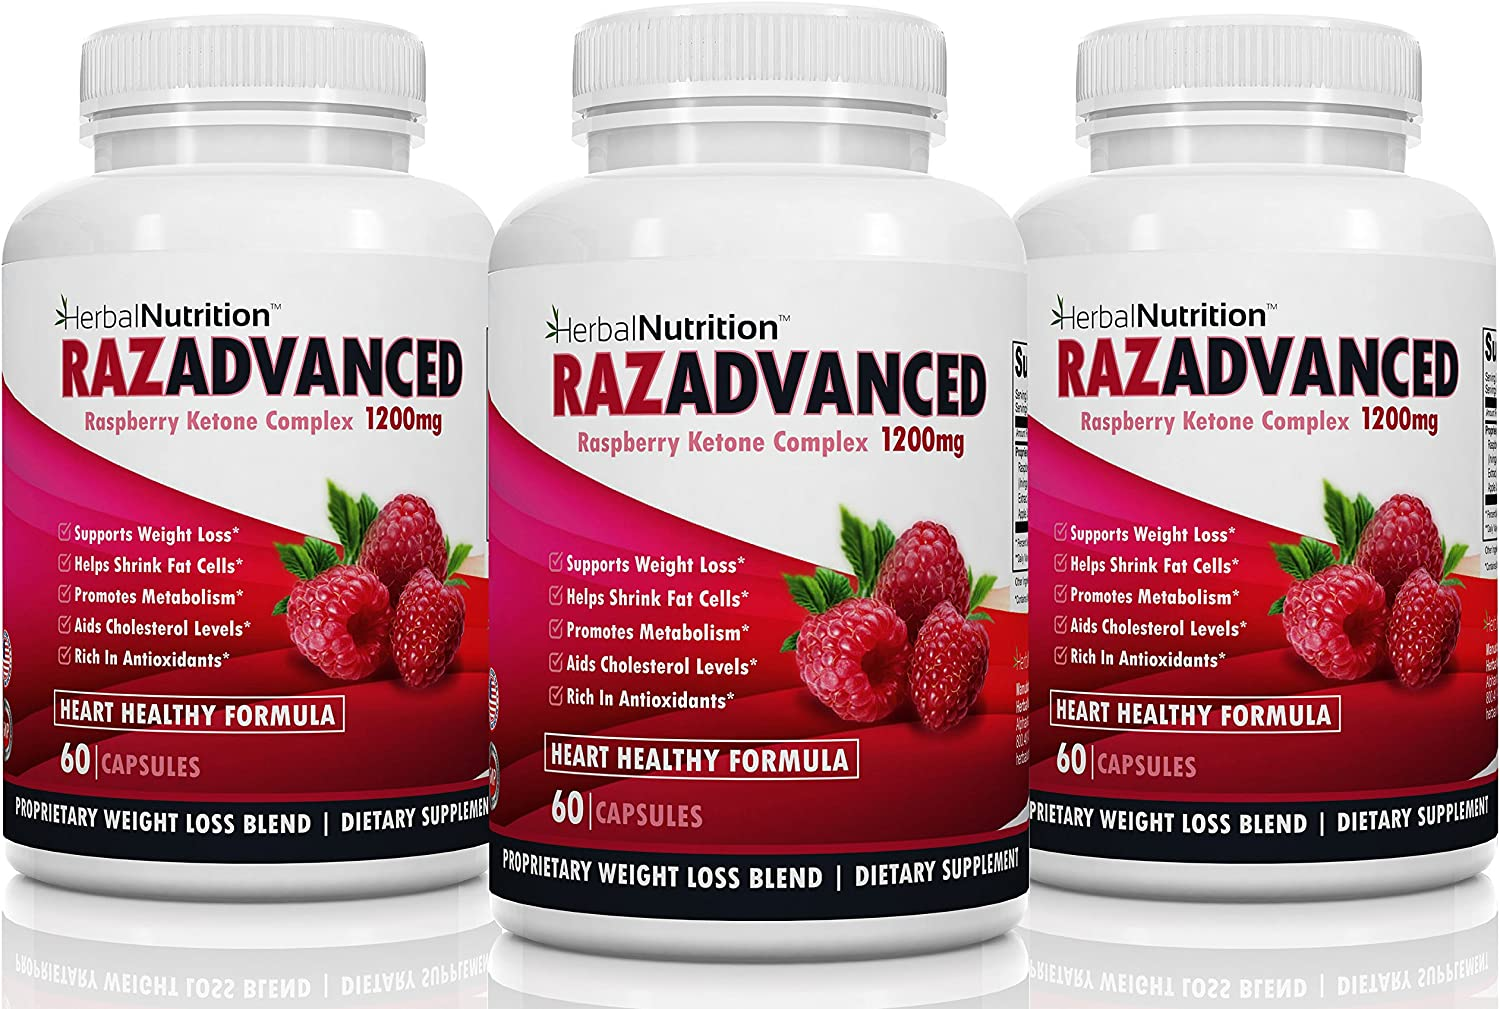 RazAdvanced Raspberry Ketones Complex Three Bottle Pack 80 Capsules 1200mg Per Serving All-Natural Veggie Caps Helps Burn Fat Suppresses Appetite Super Antioxidant